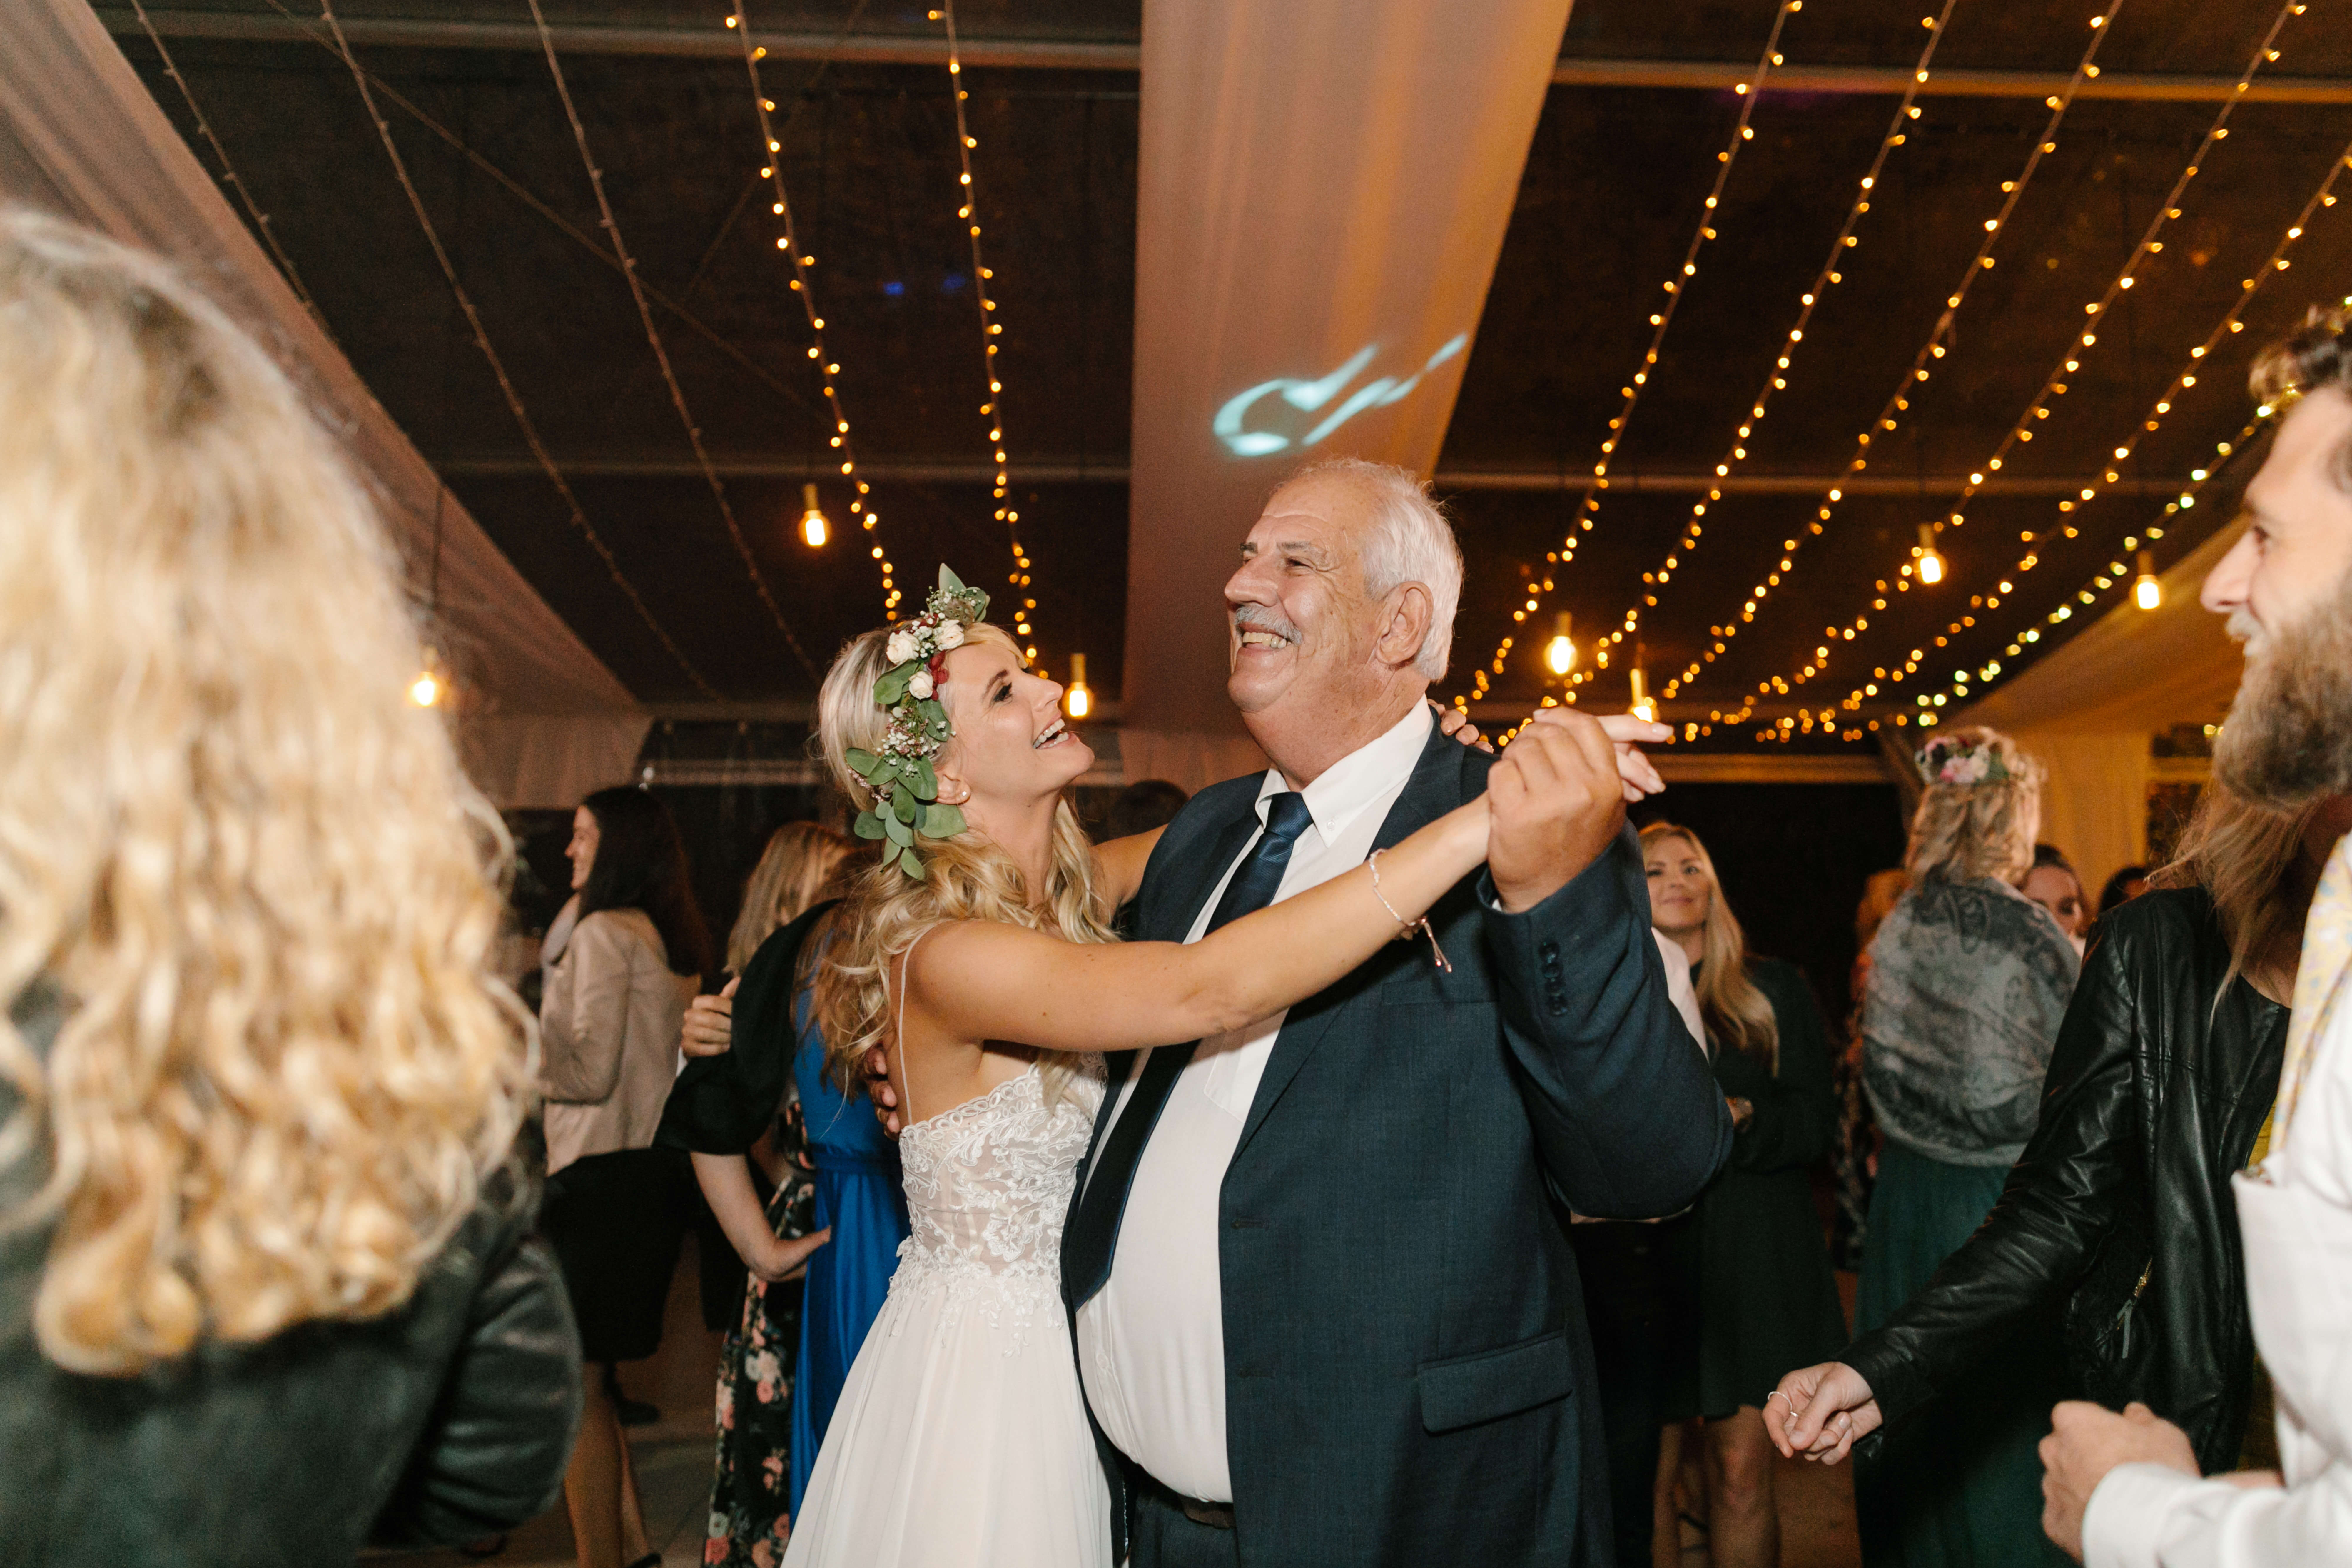 A bride and her father dancing to an amazing wedding DJ.